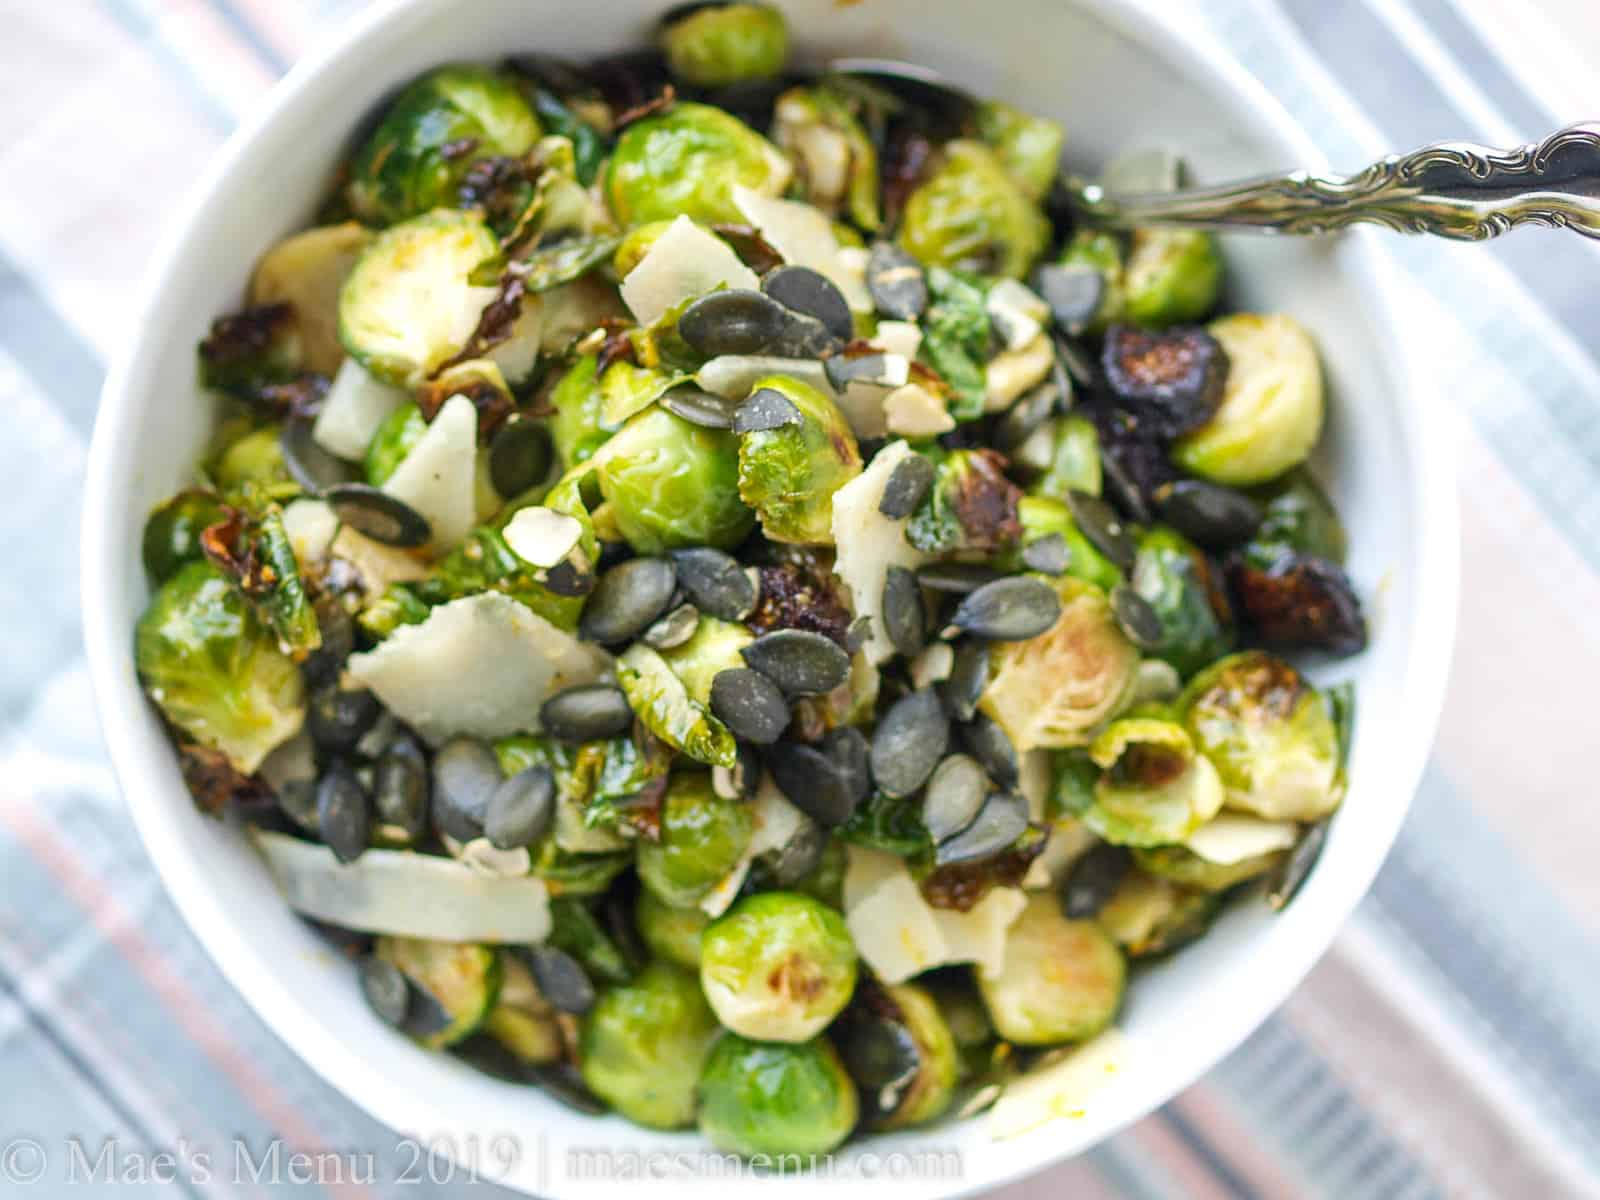 Large serving bowl of healthy roasted brussels sprouts